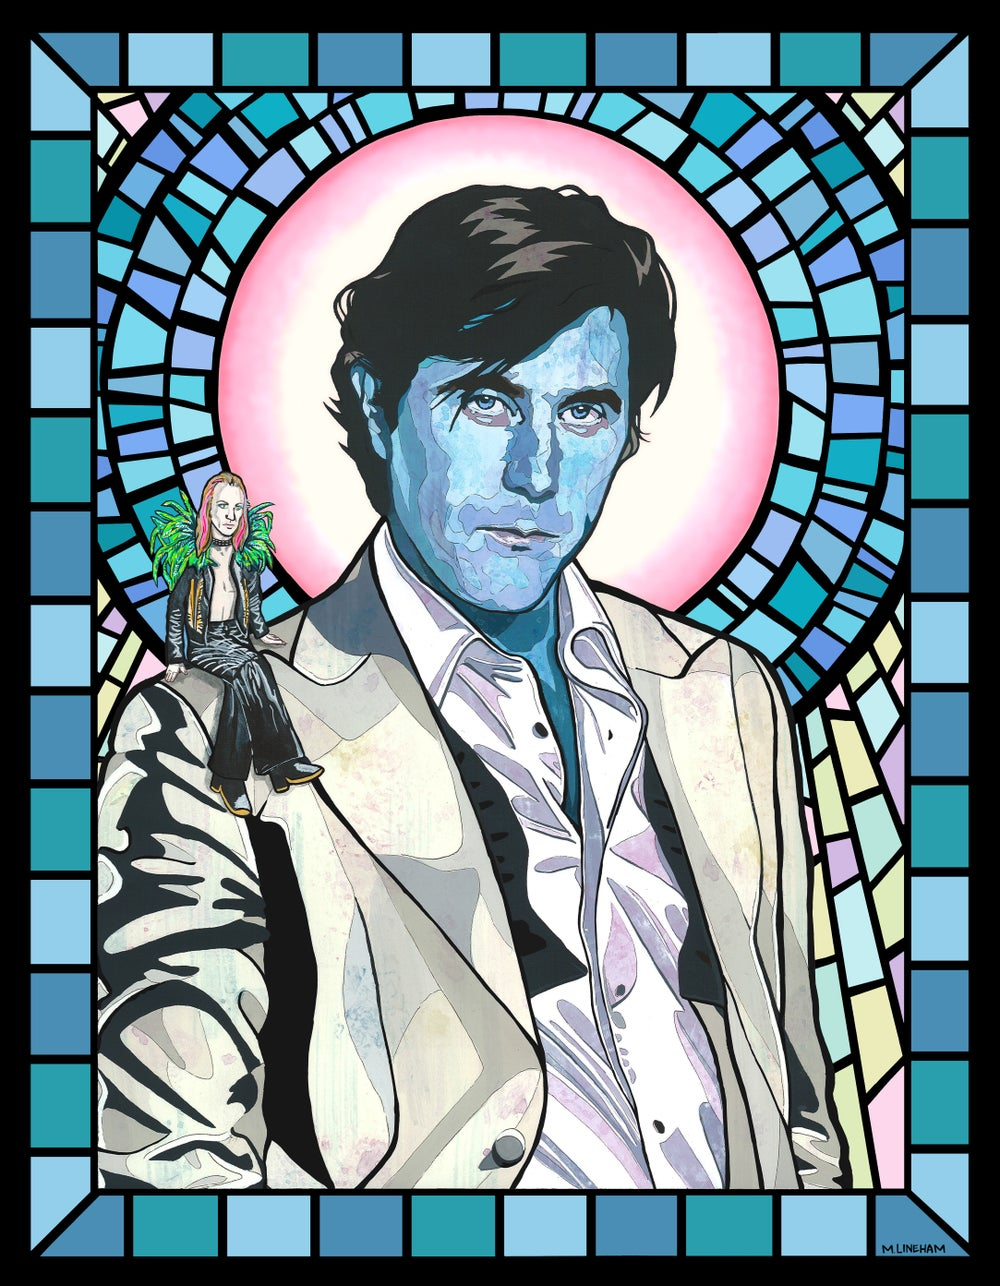 Saint Bryan Ferry (Roxy Music)